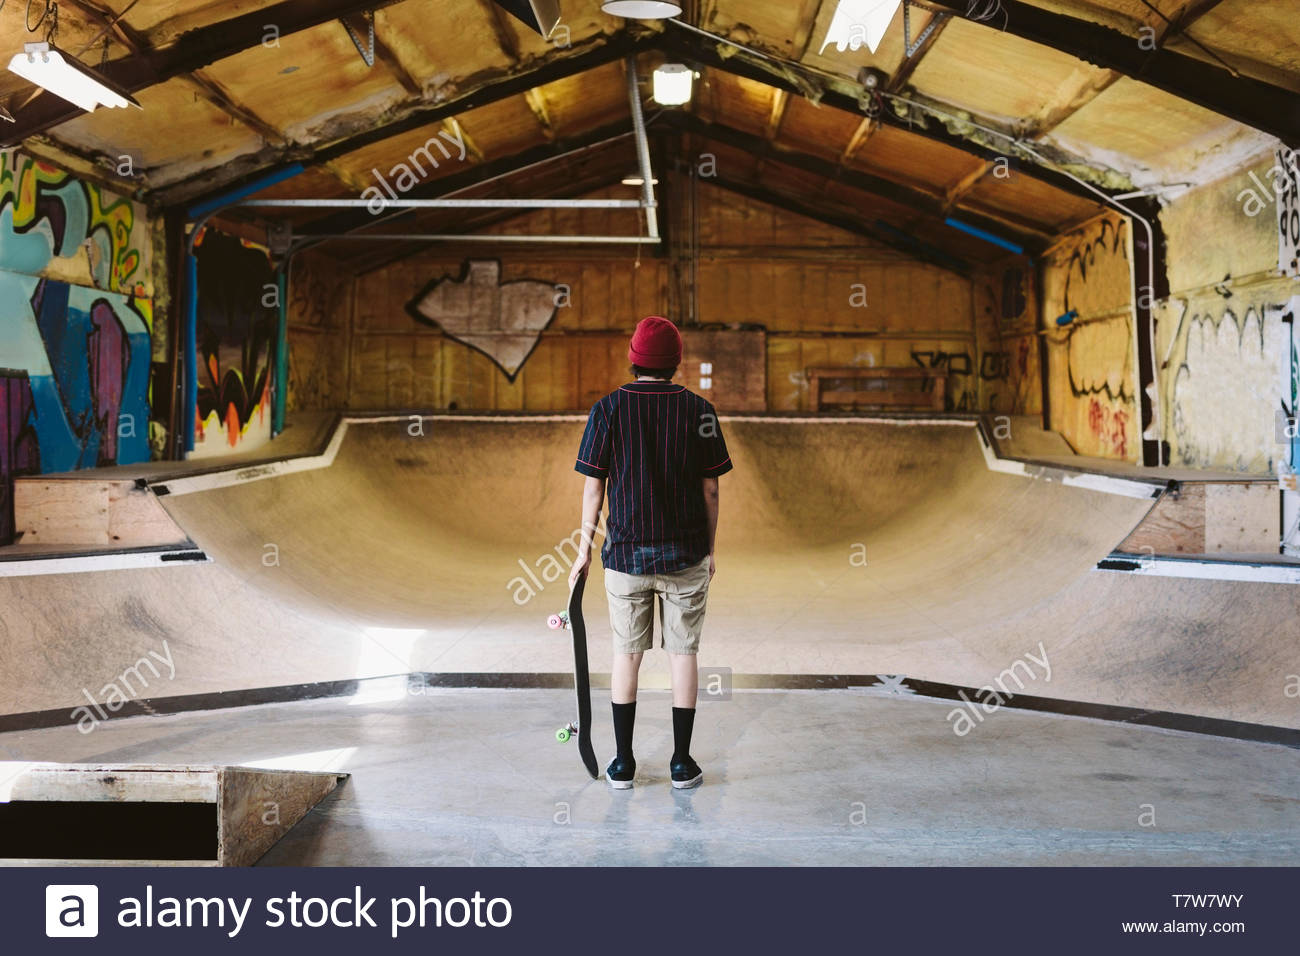 Young male skateboarder at indoor skate park - Stock Image